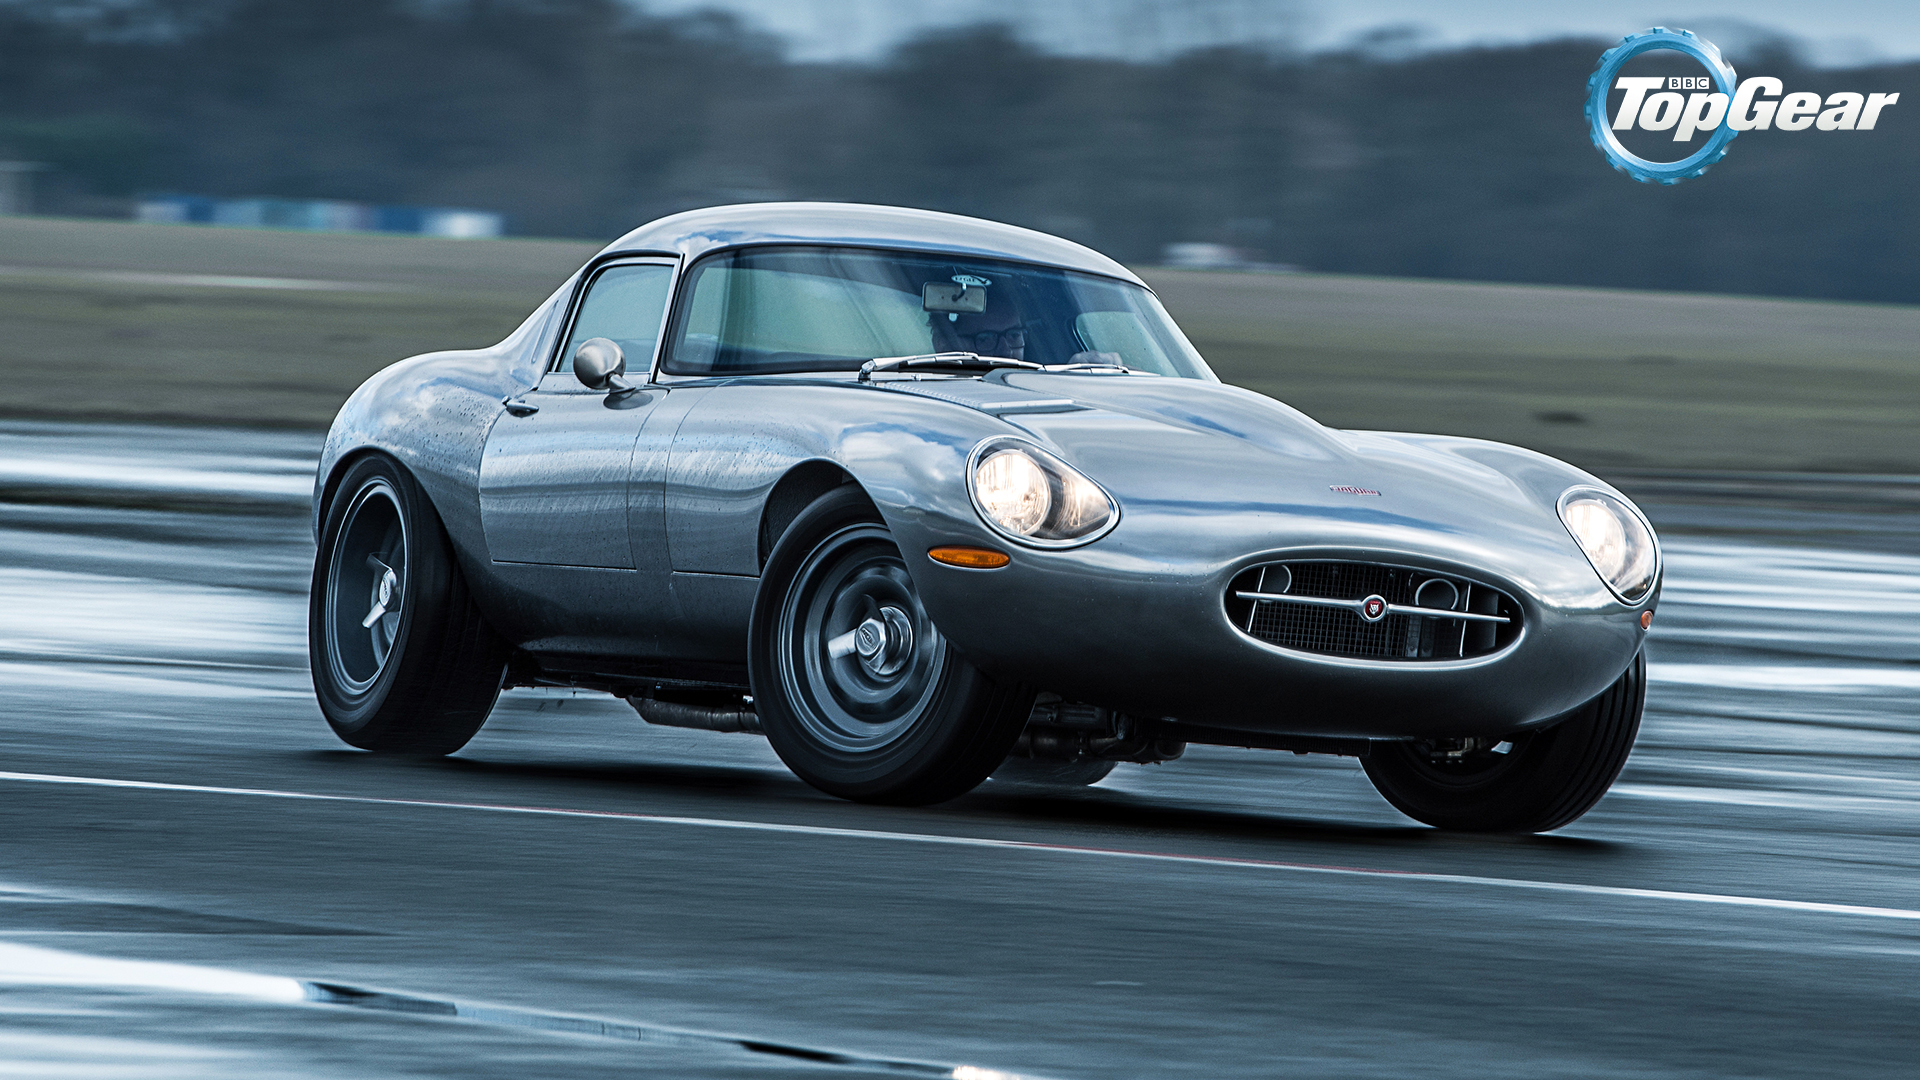 wallpapers: eagle low drag gt